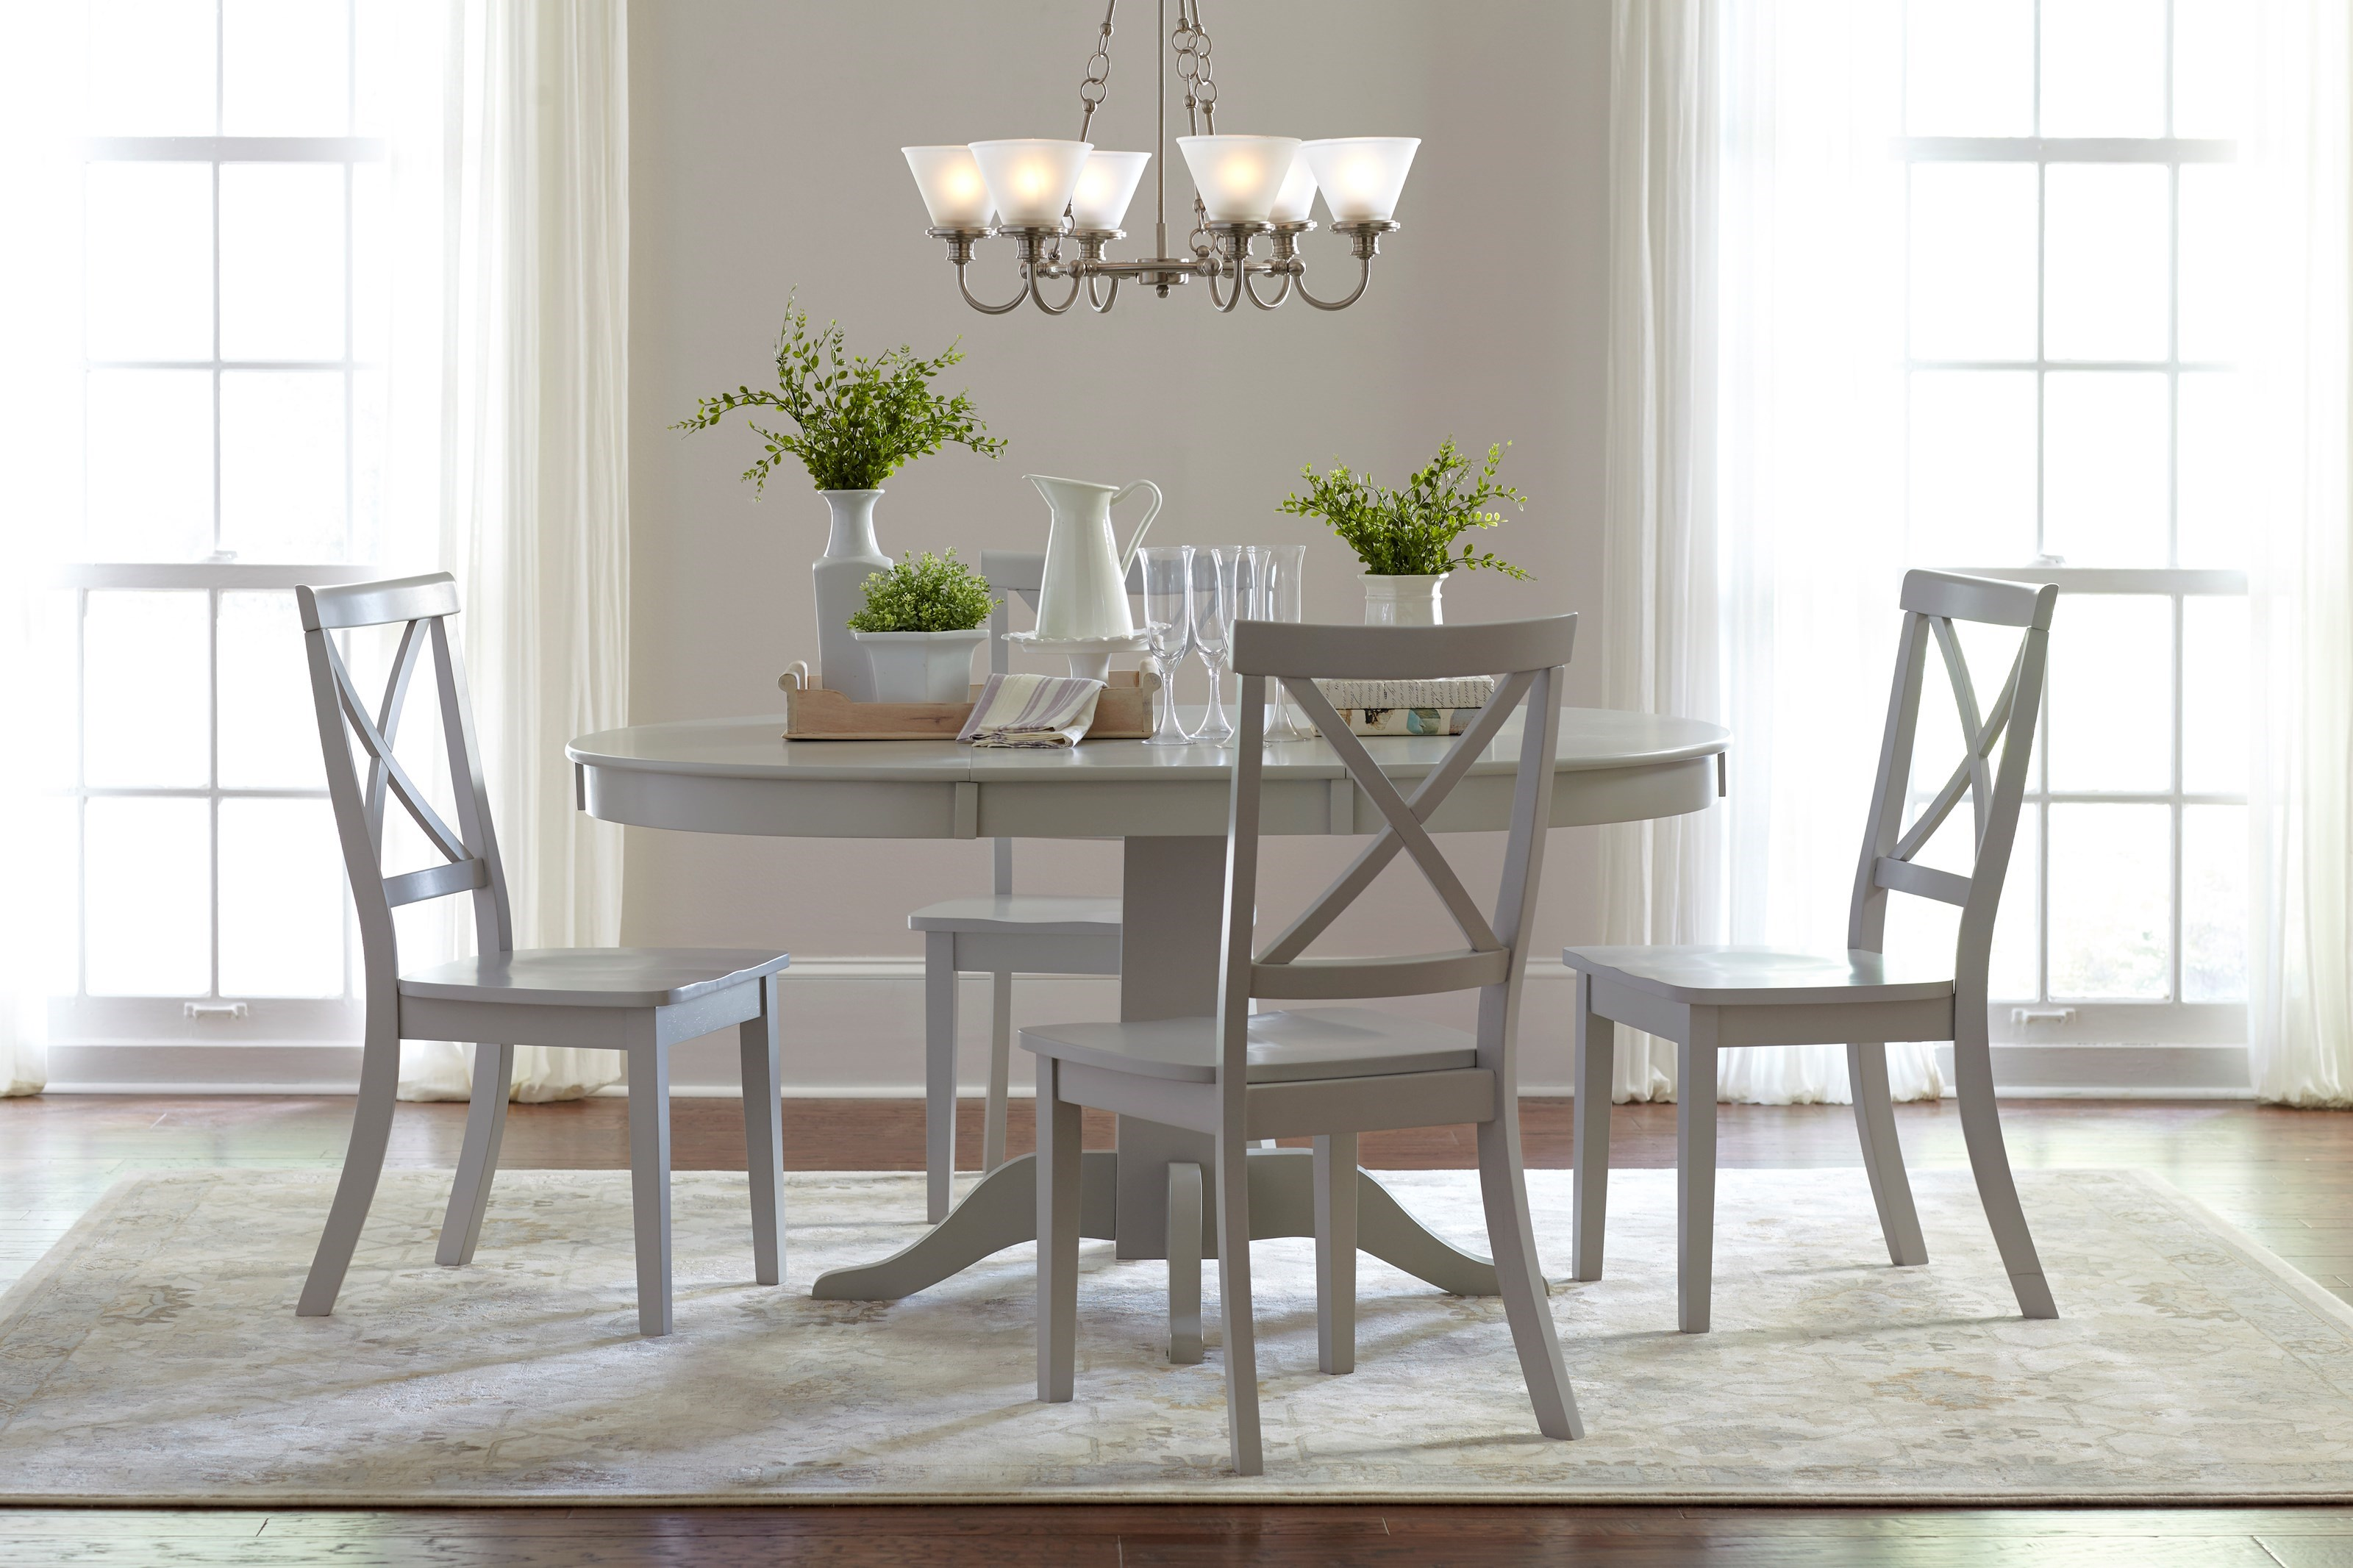 Everyday Classics Round to Oval Dining Table and 4 Chair Set  sc 1 st  Jofran & Jofran Everyday Classics Round to Oval Dining Table and 4 Chair Set ...